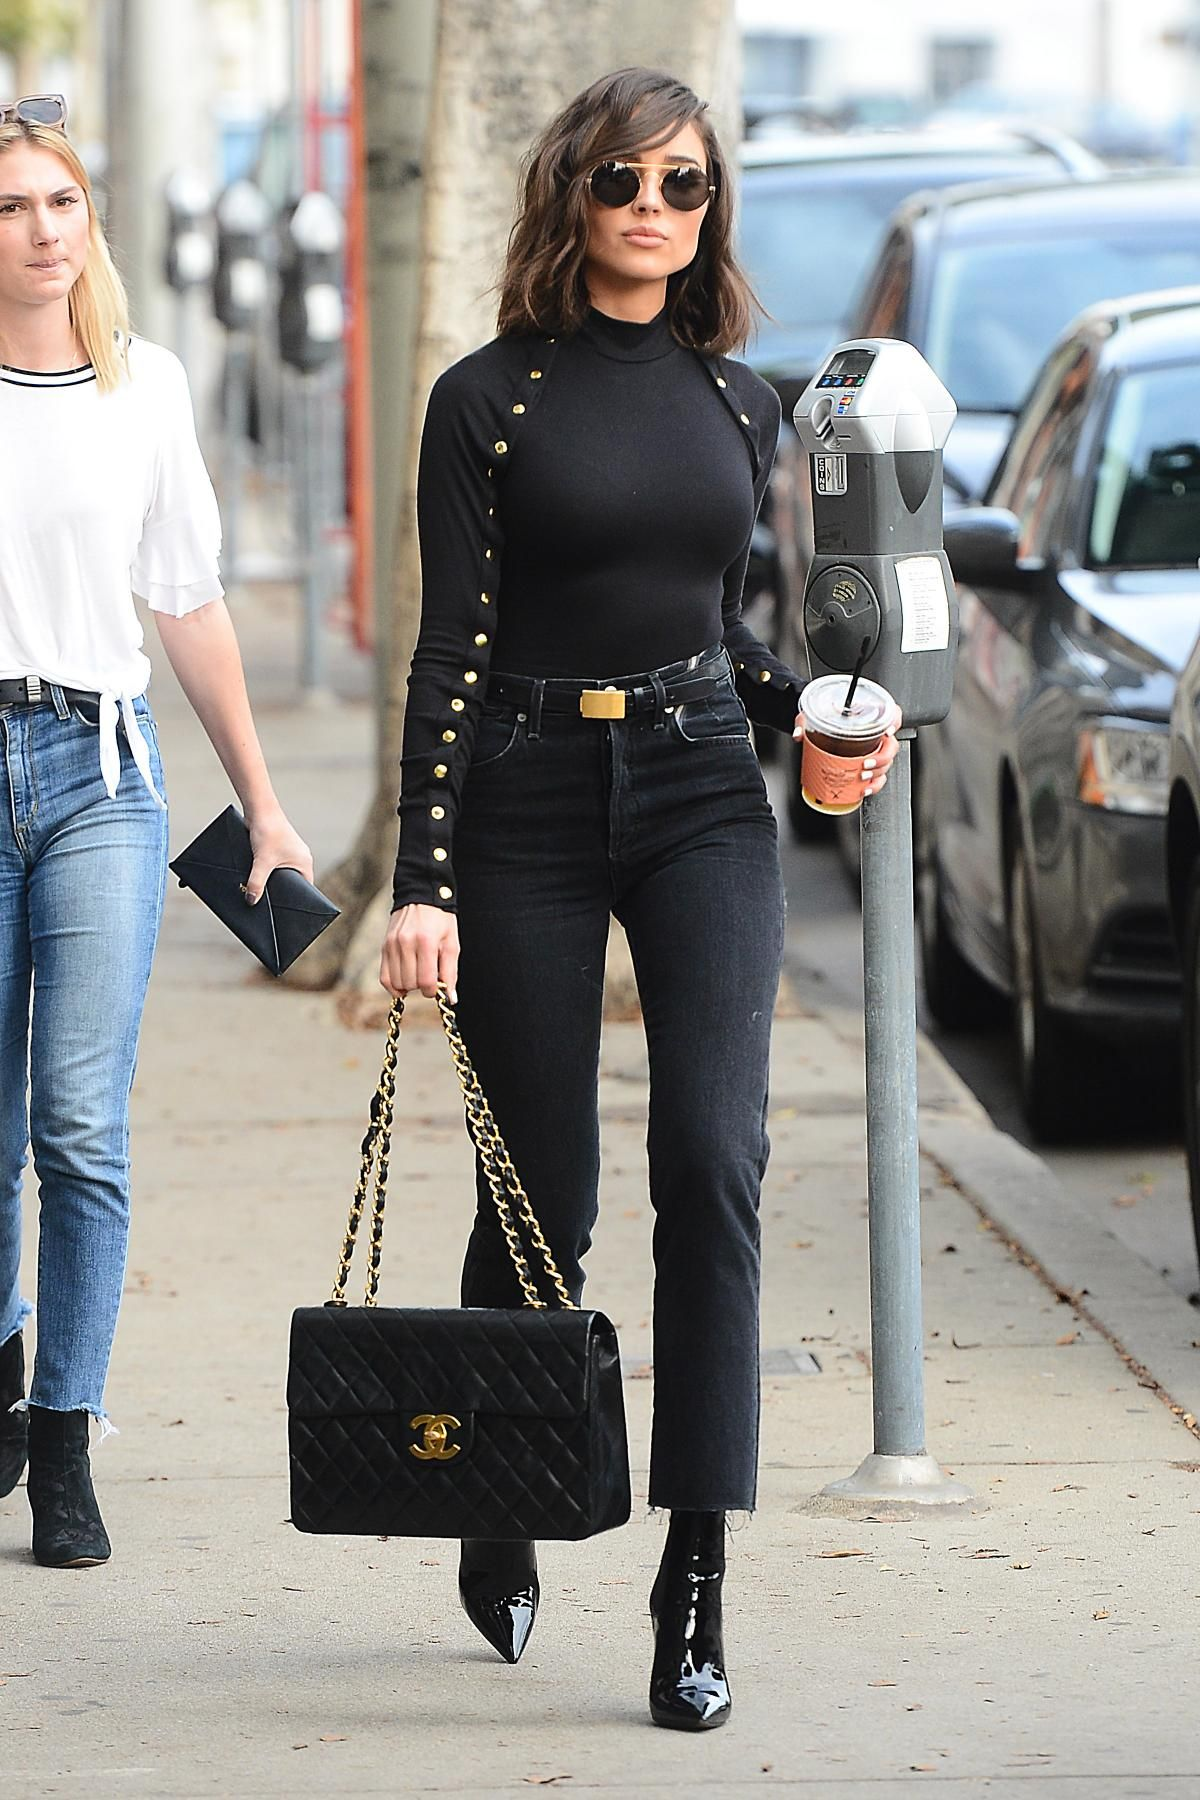 photo Olivia culpo is stylish soho in nyc